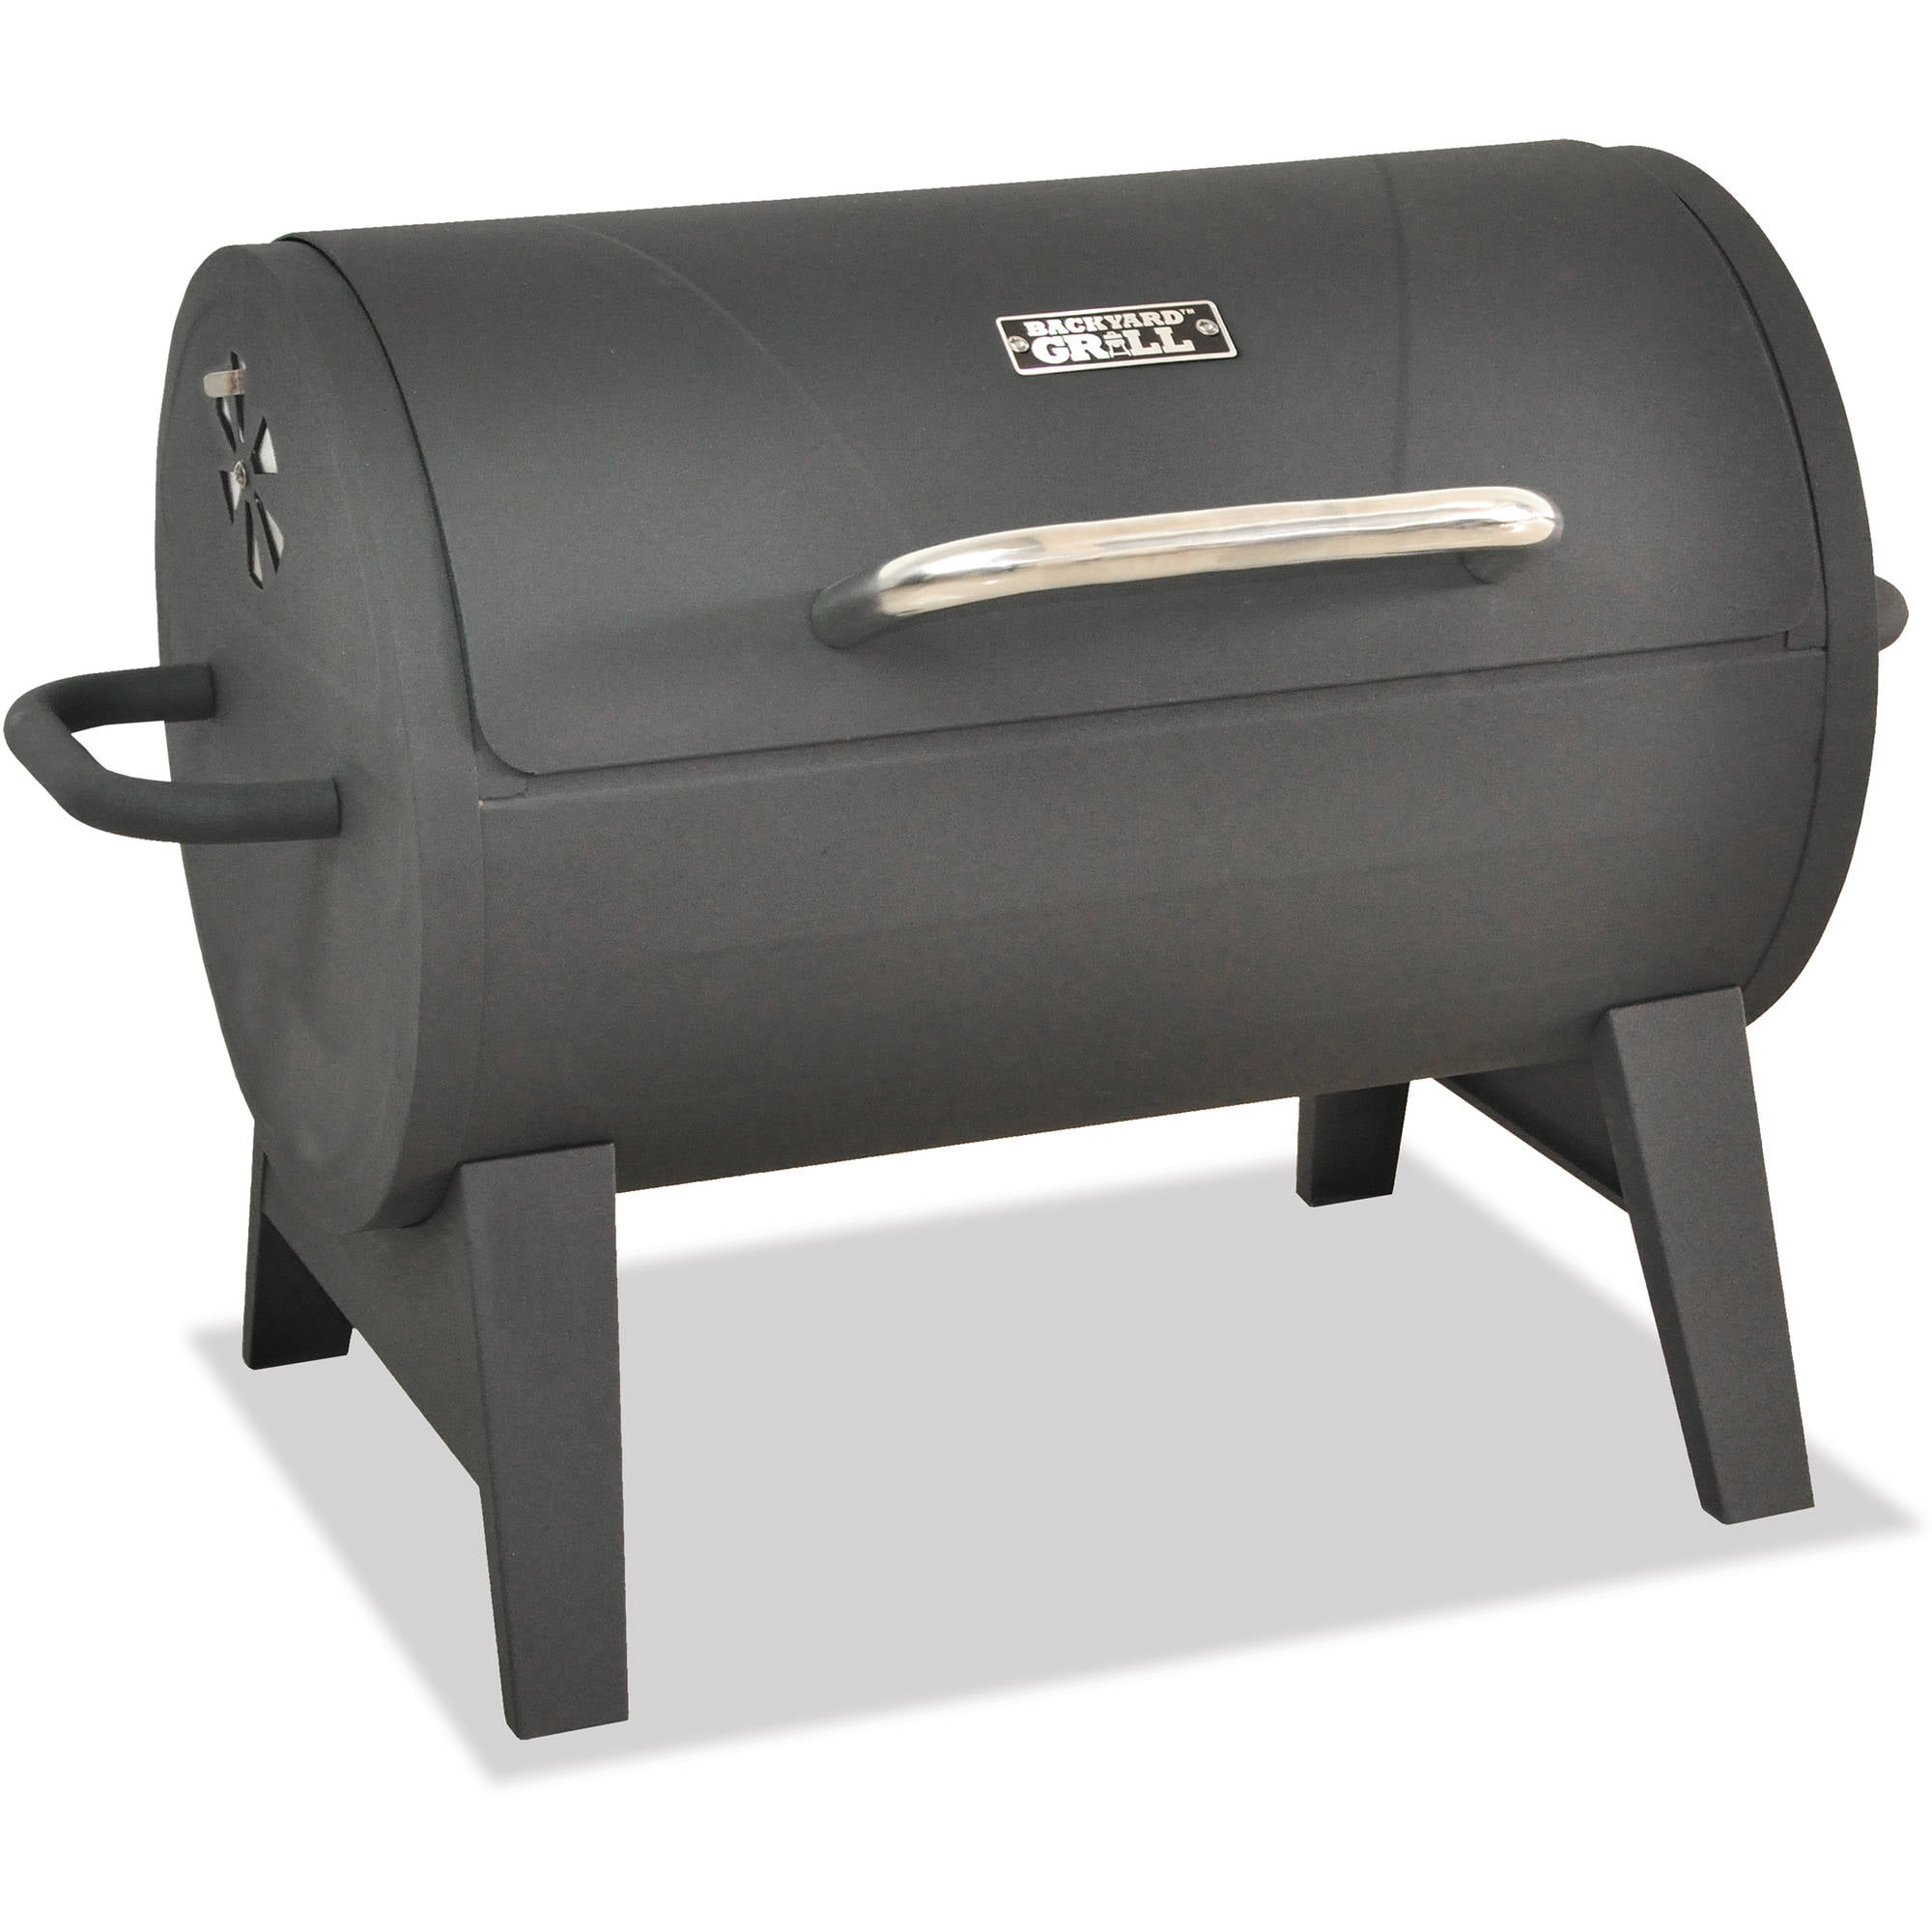 the original outdoor cooker 22 5 u0027 u0027 deluxe kettle charcoal grill